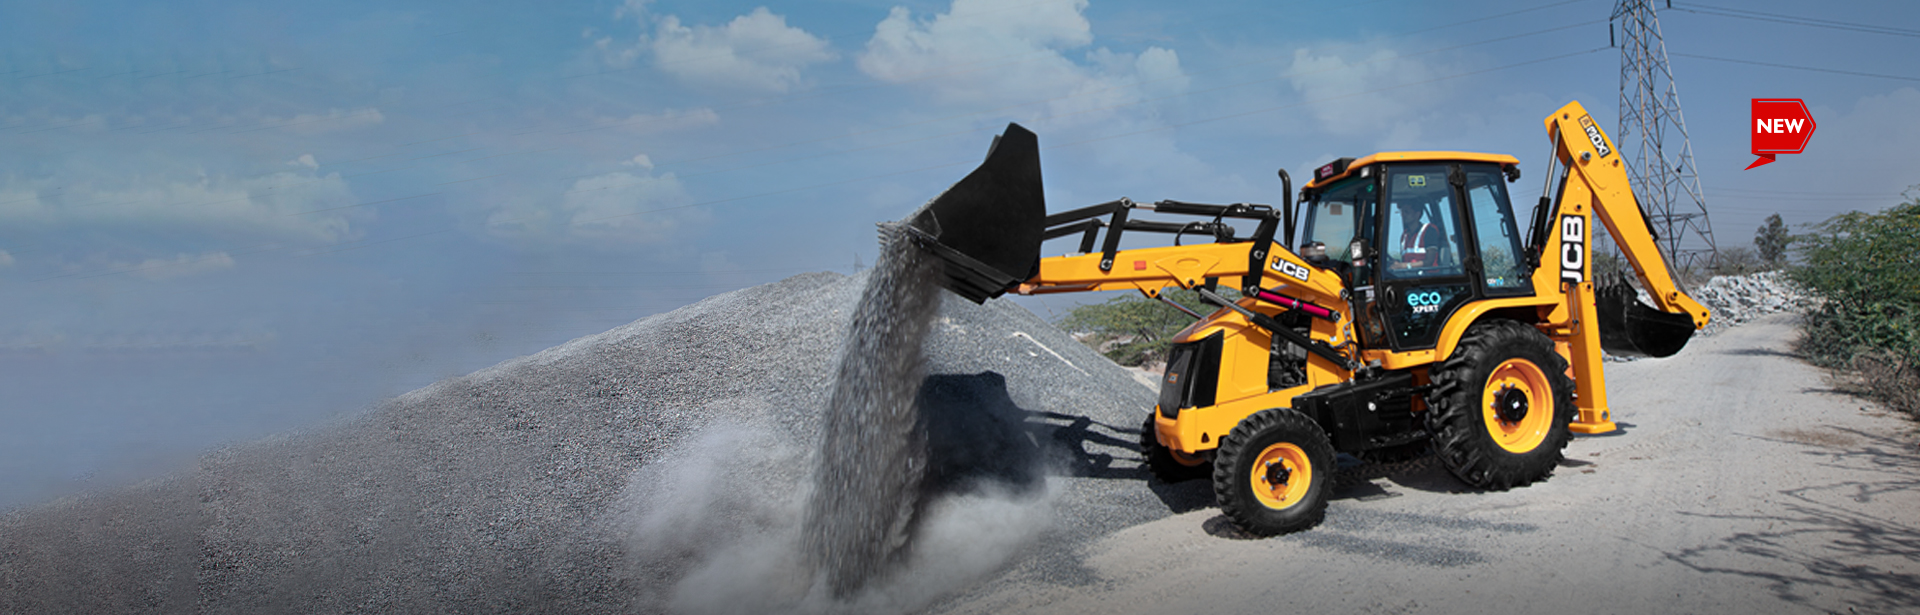 JCB 3DX PLUS Dehradun